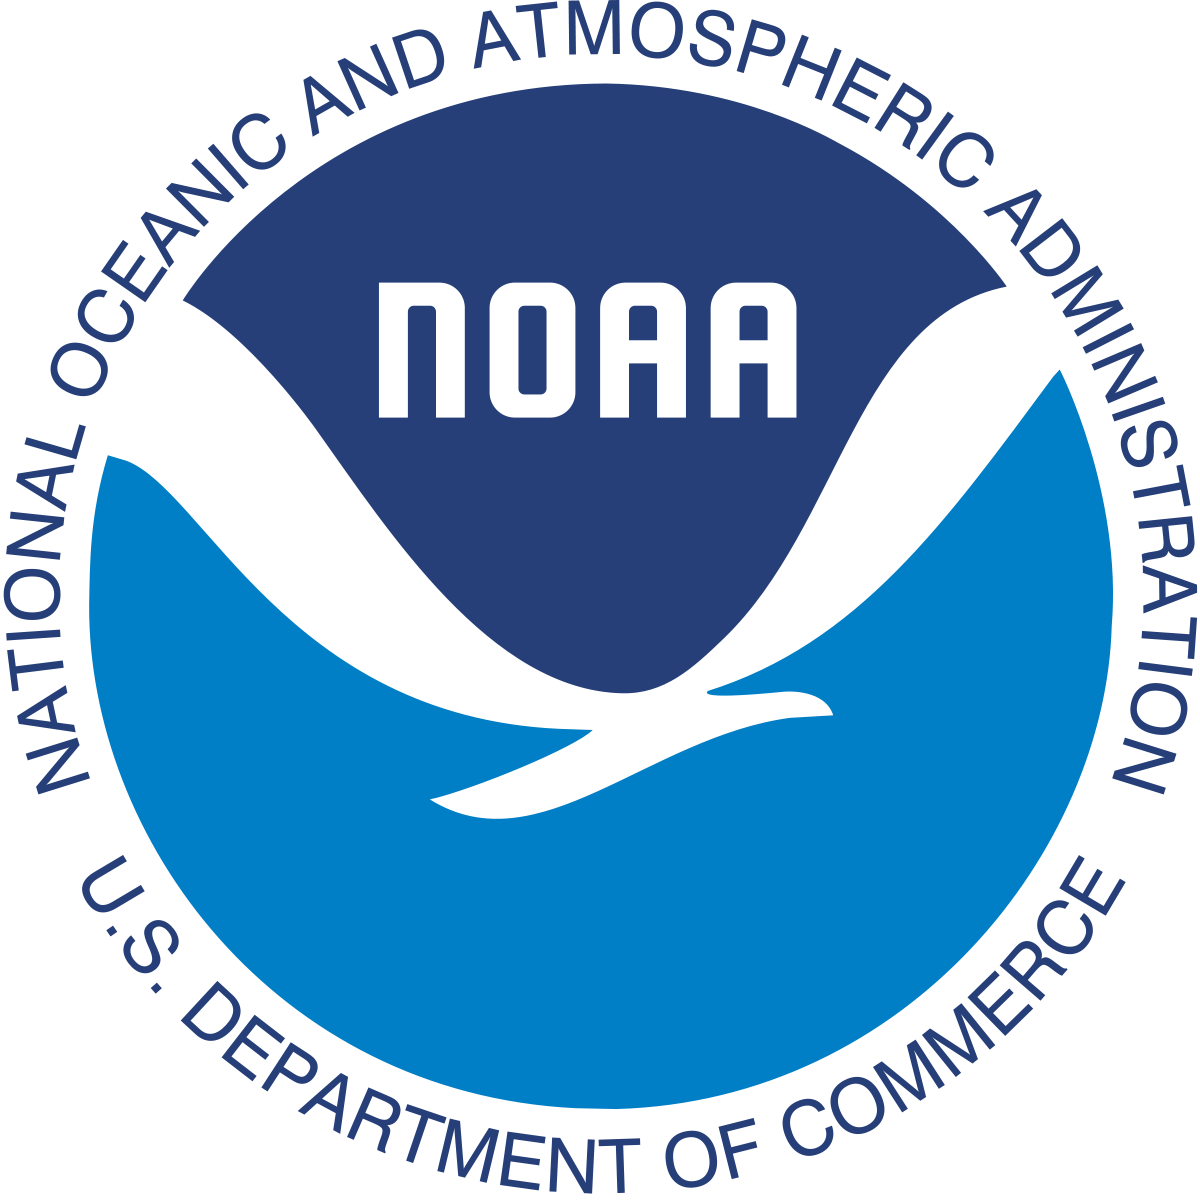 National Oceanic and Atomospheric Administration